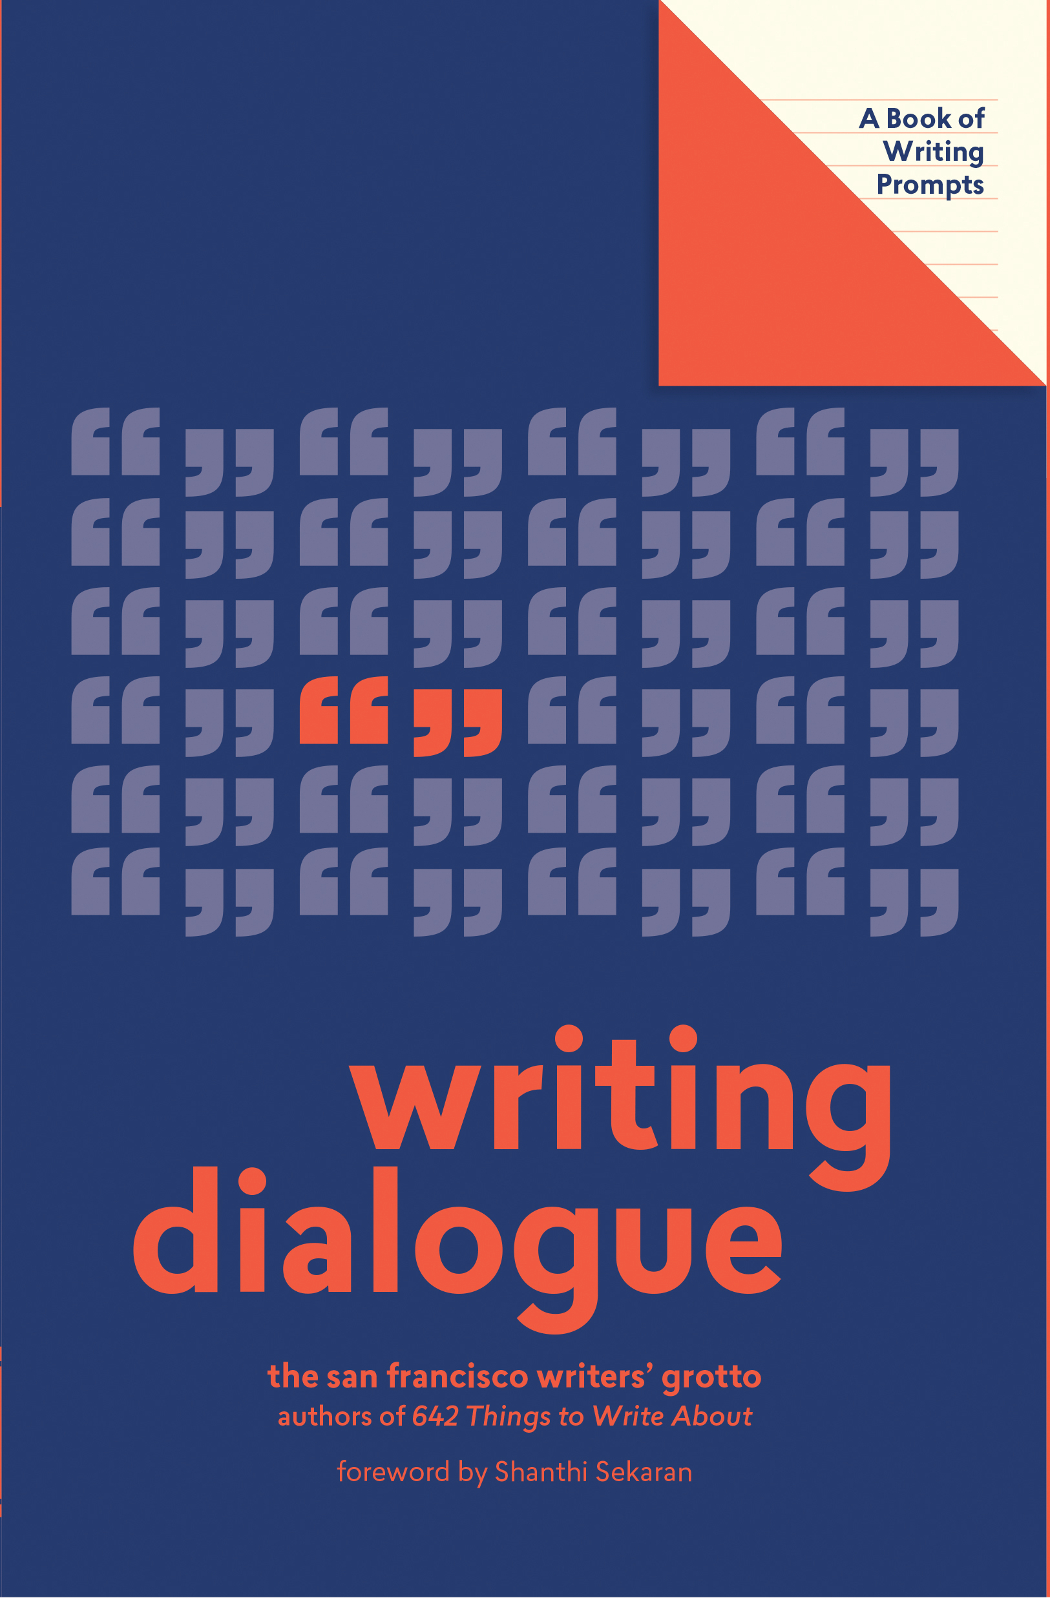 Literature as Dialogue: Invitations offered and negotiated